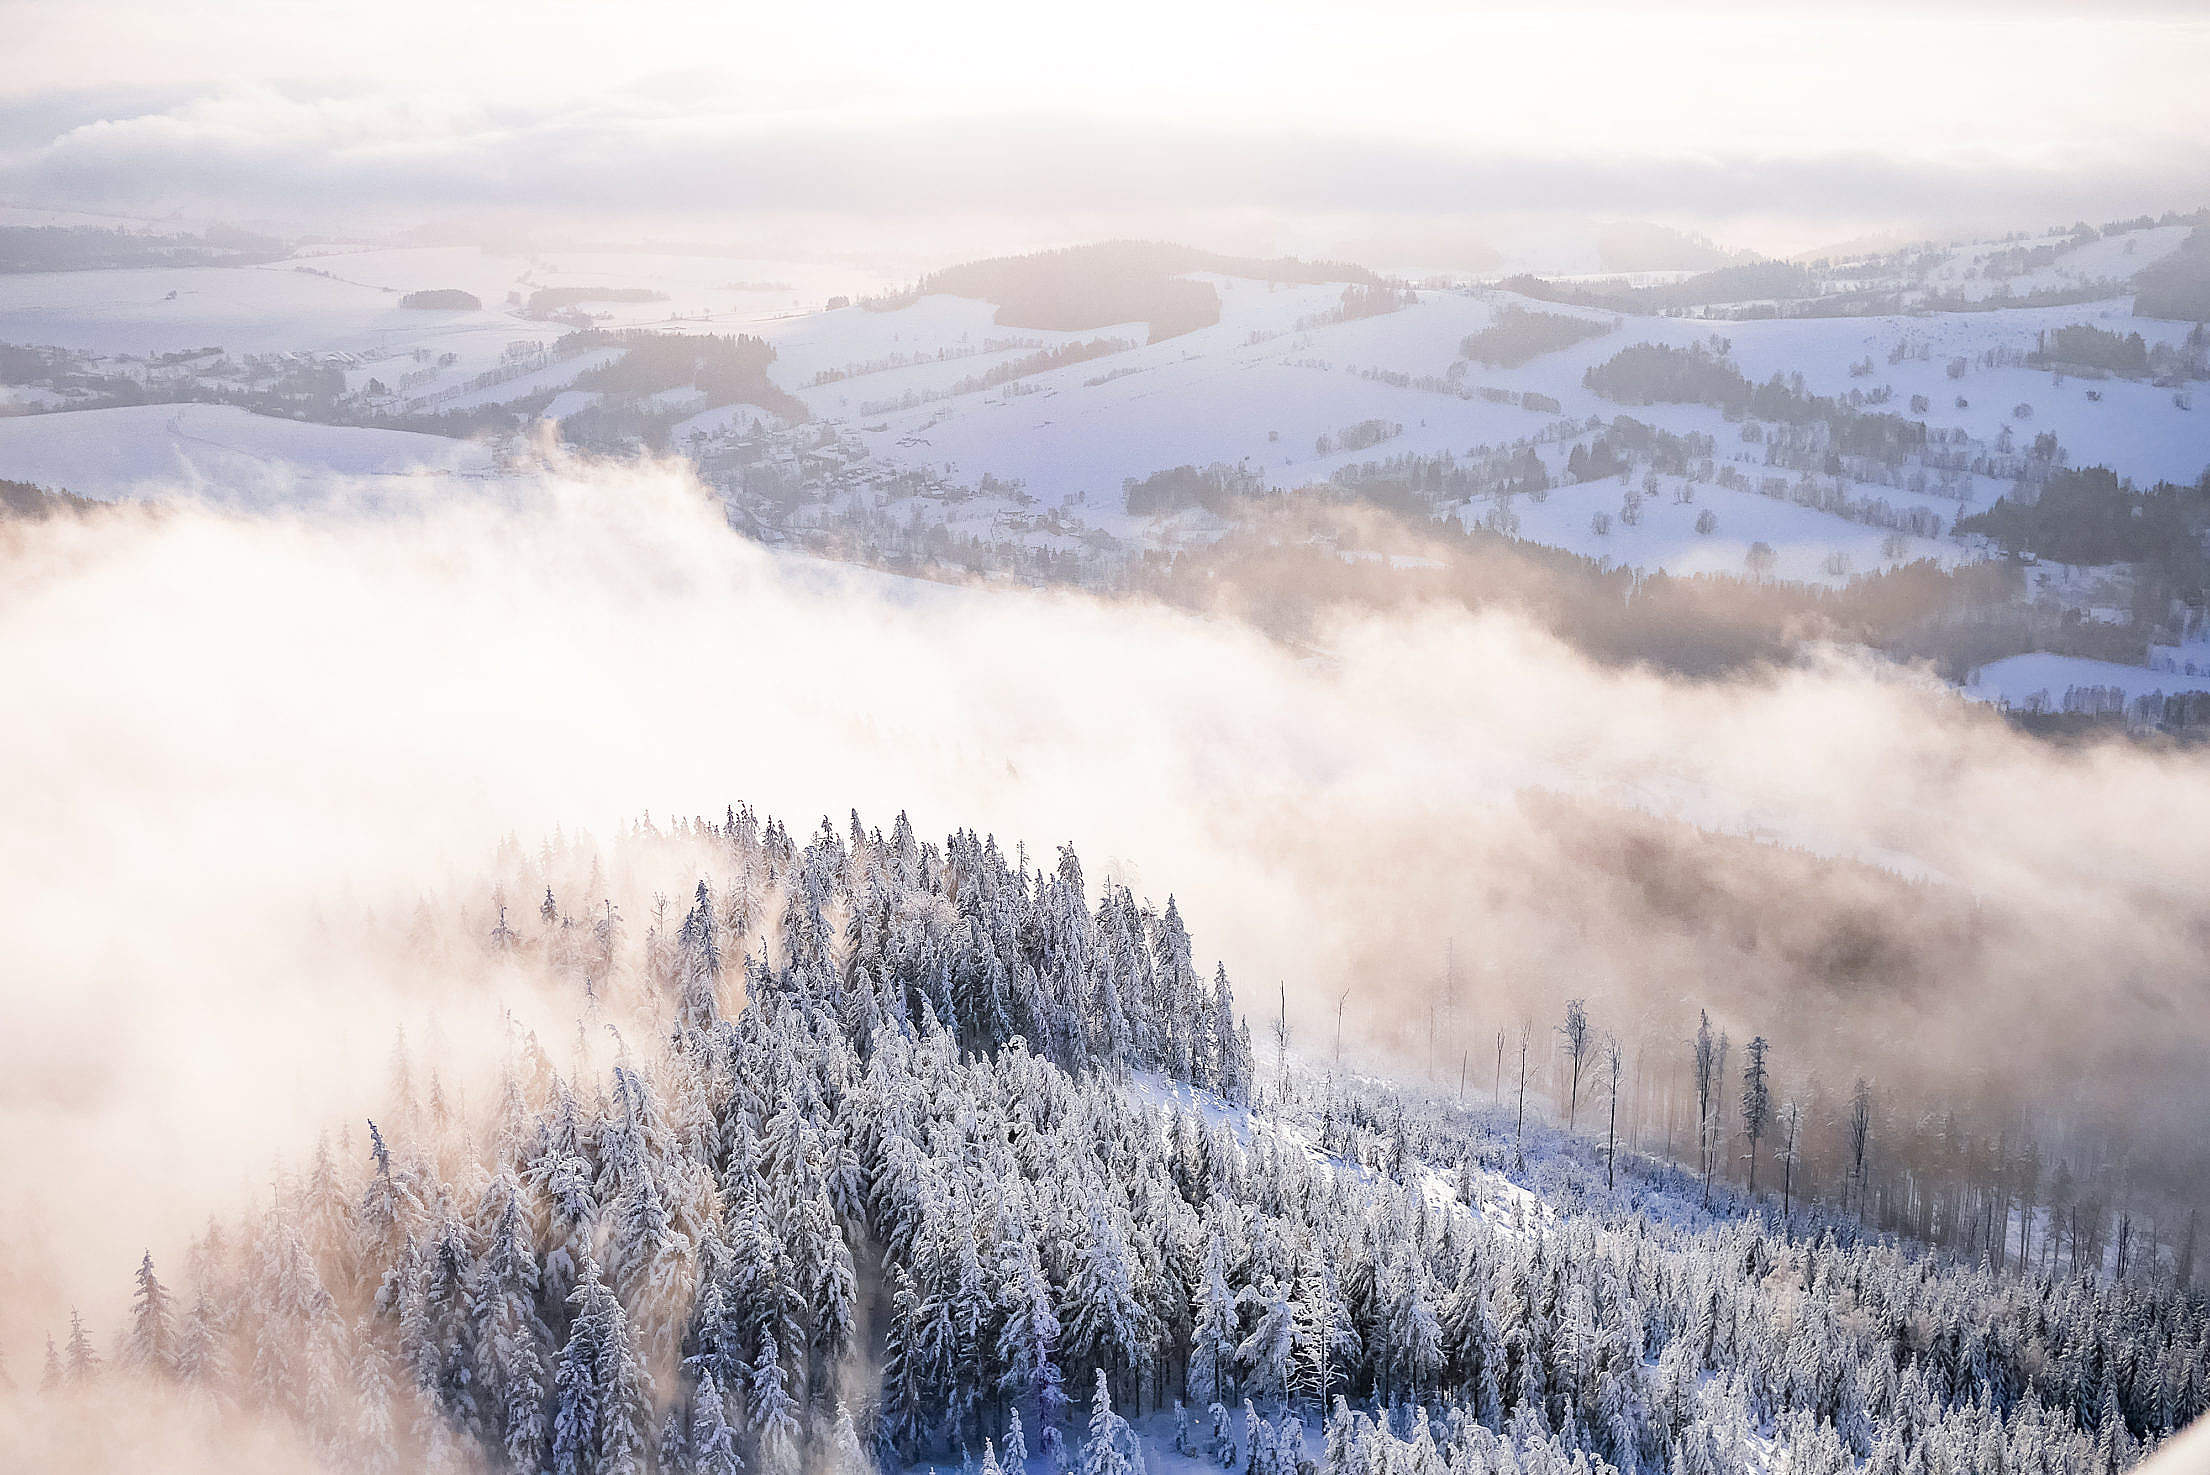 Fog In Snowy Forest Winter Scenery Free Stock Photo